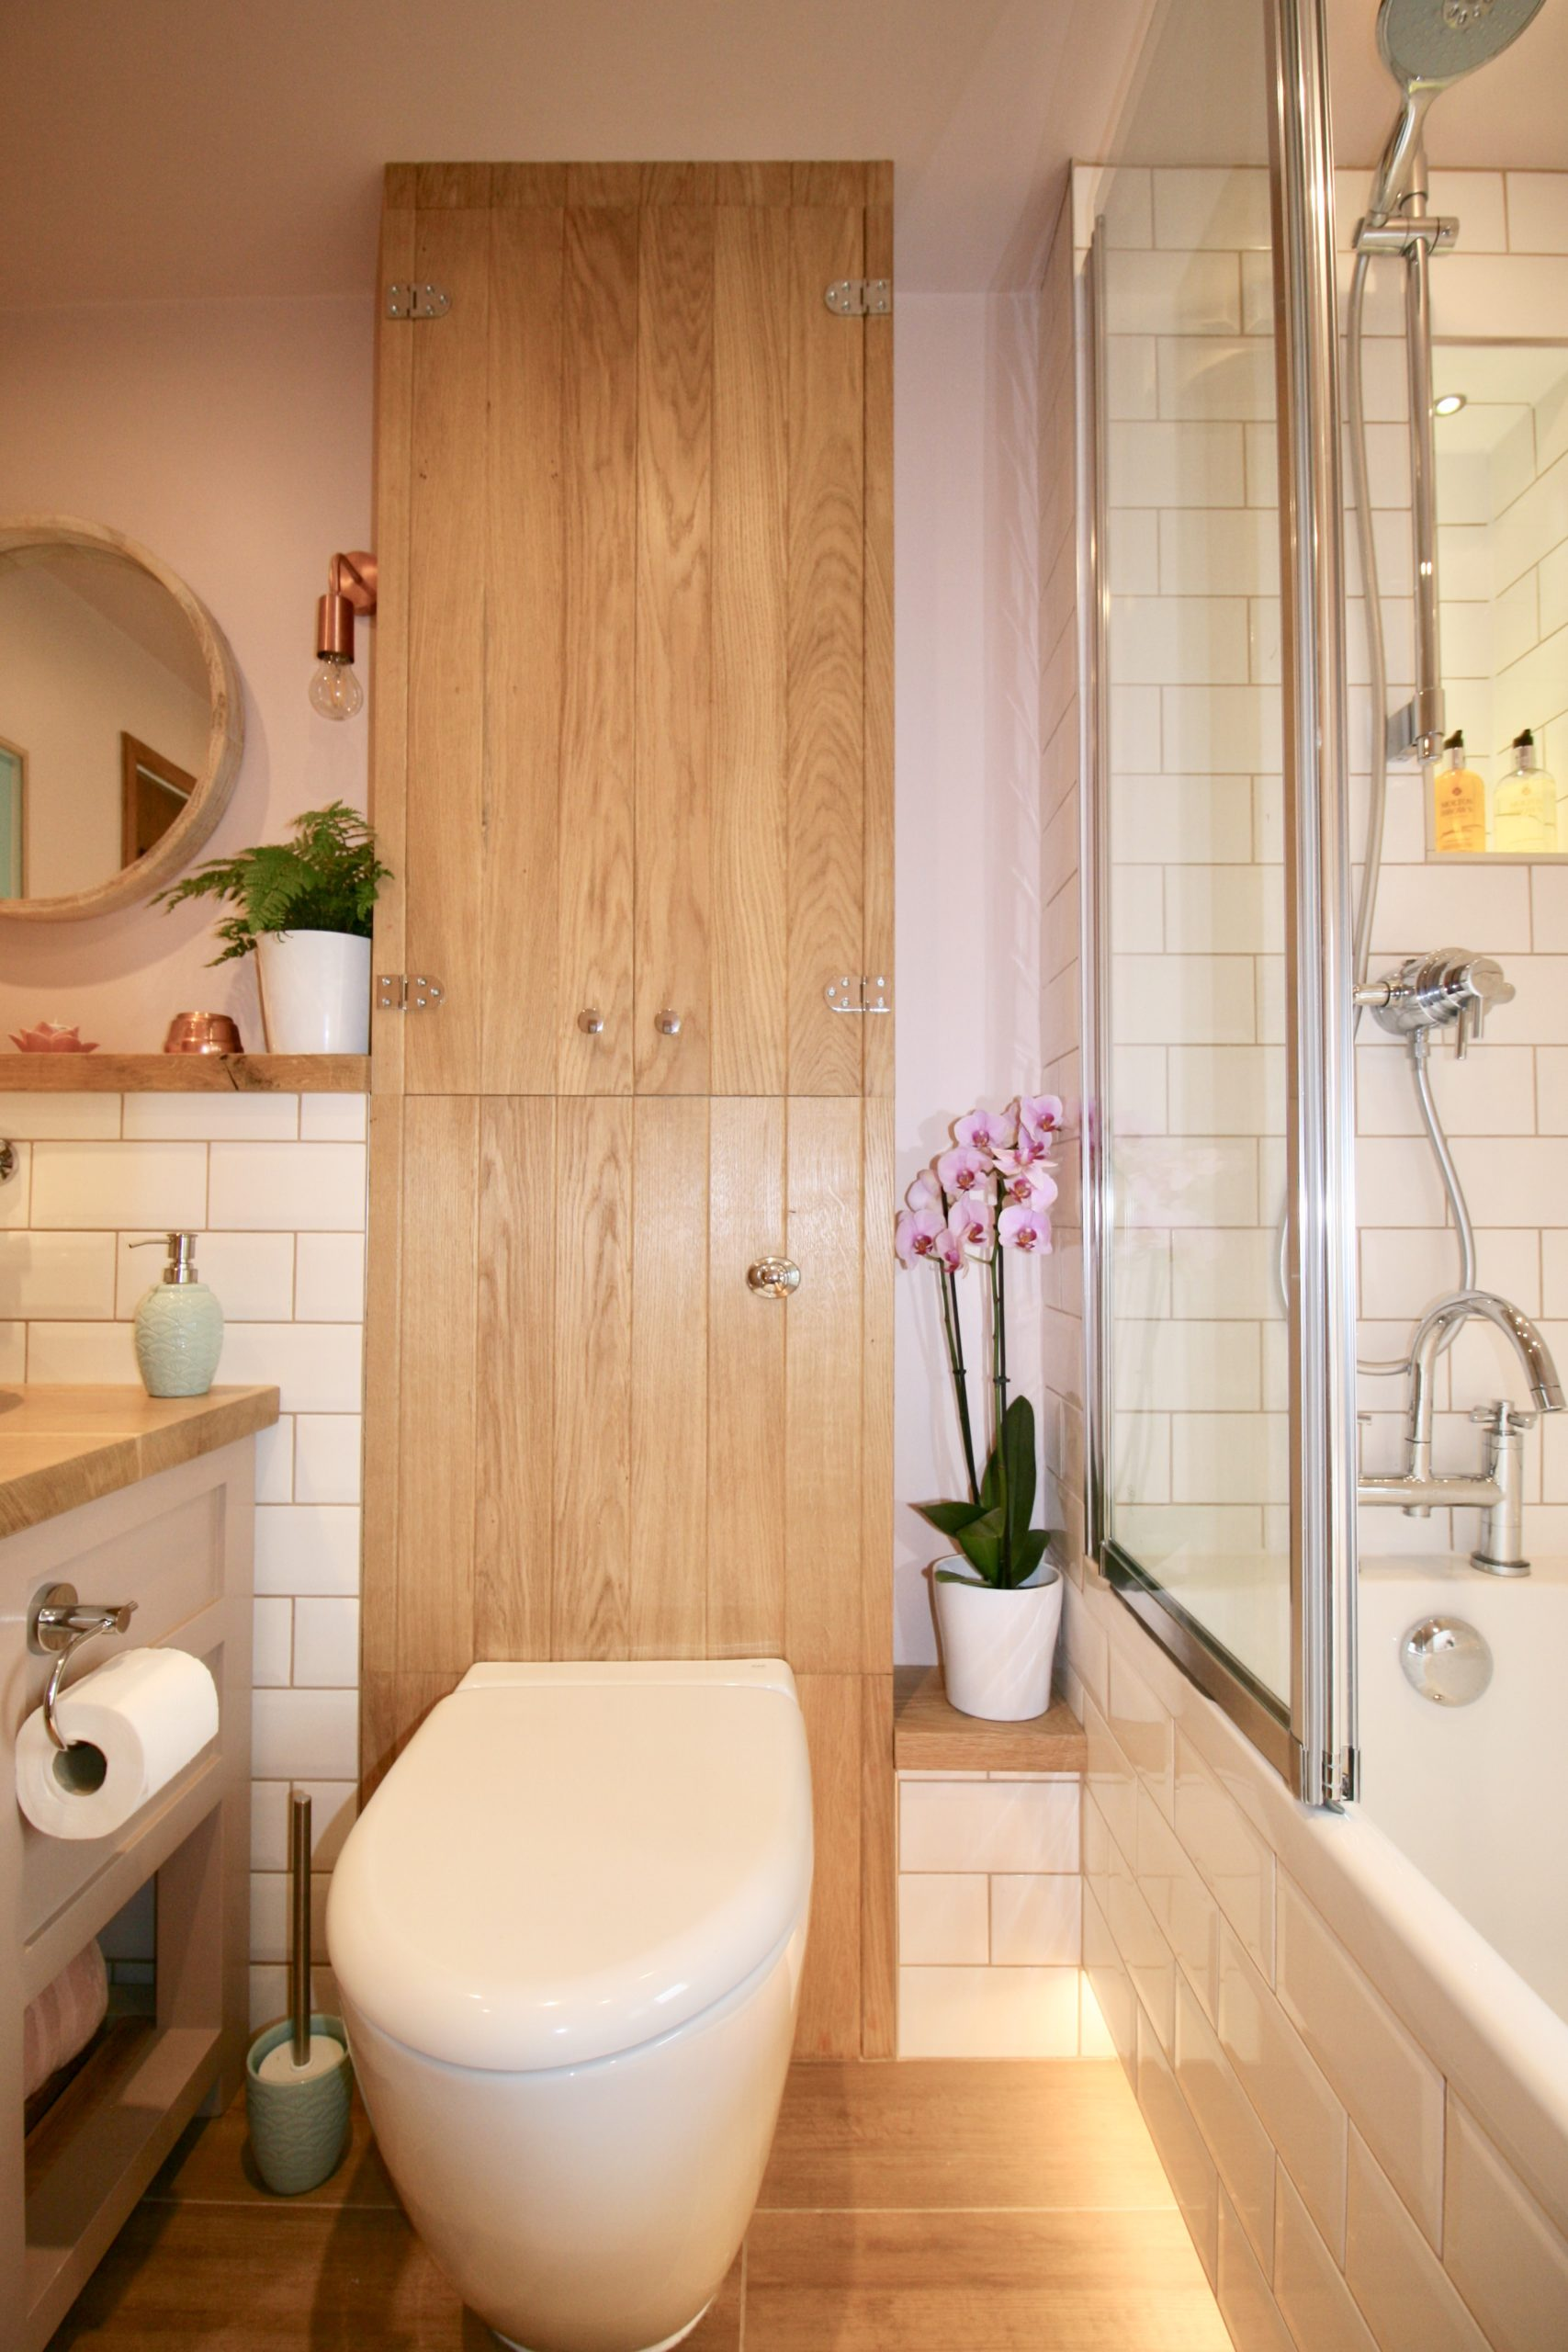 Bathrooms - Custom built oak cupboard in bathroom designed by Amelia Wilson Interiors